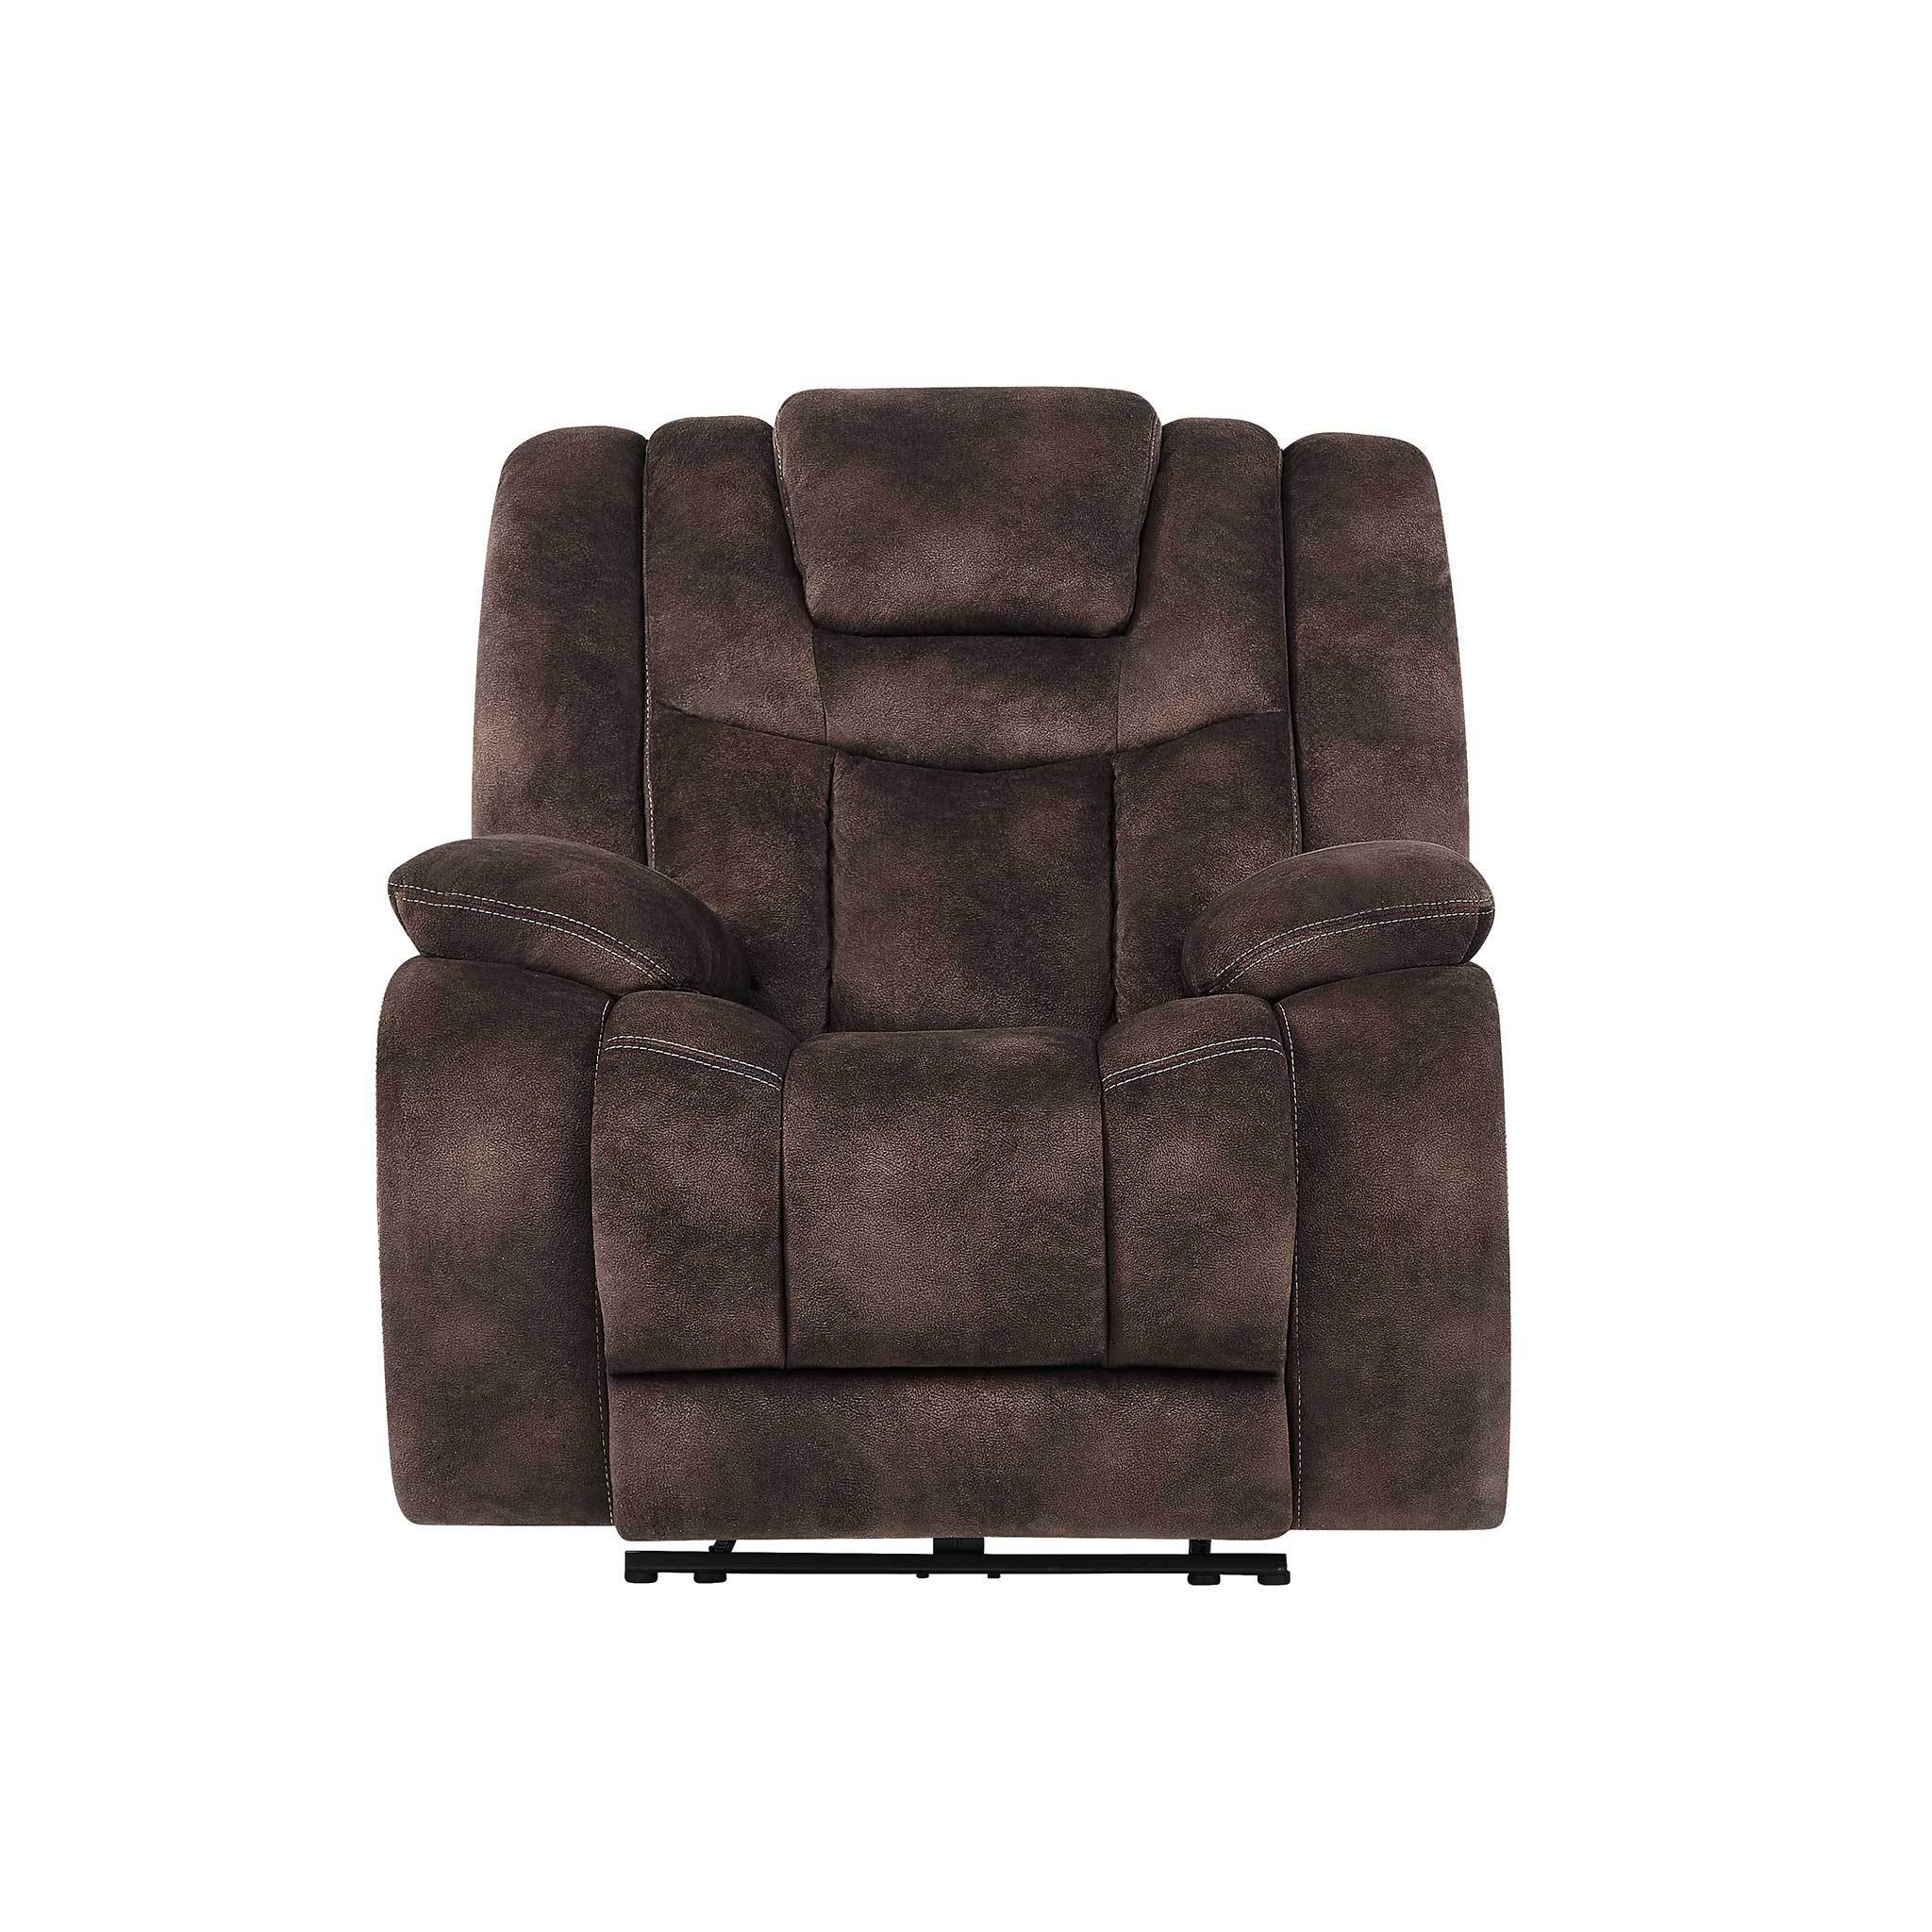 Stupendous Global Furniture U1706 Agnes Espresso Fabric Power Recliner Ocoug Best Dining Table And Chair Ideas Images Ocougorg